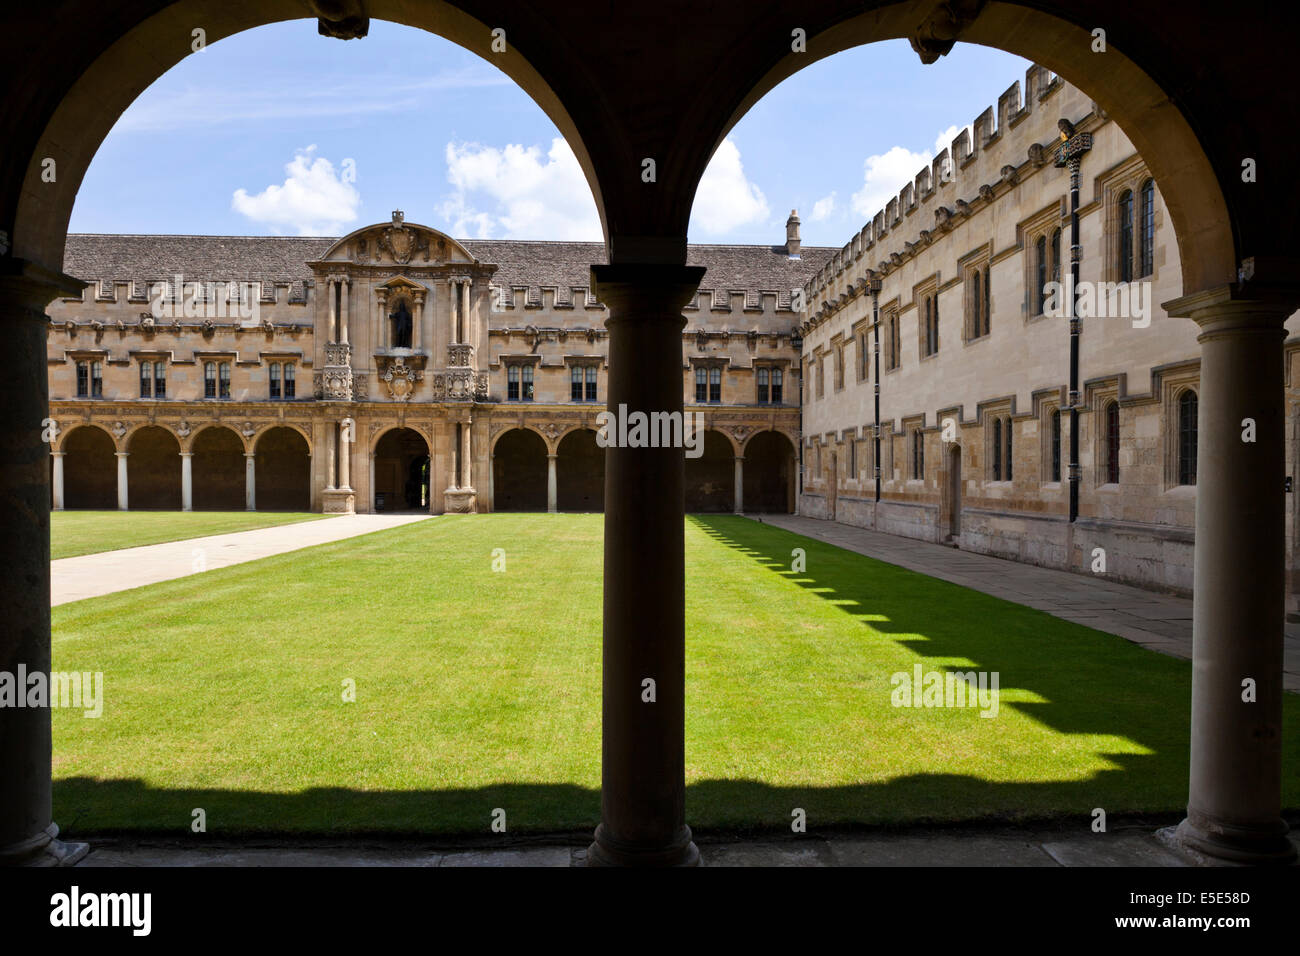 St Johns College at Oxford University, Oxford UK - Stock Image